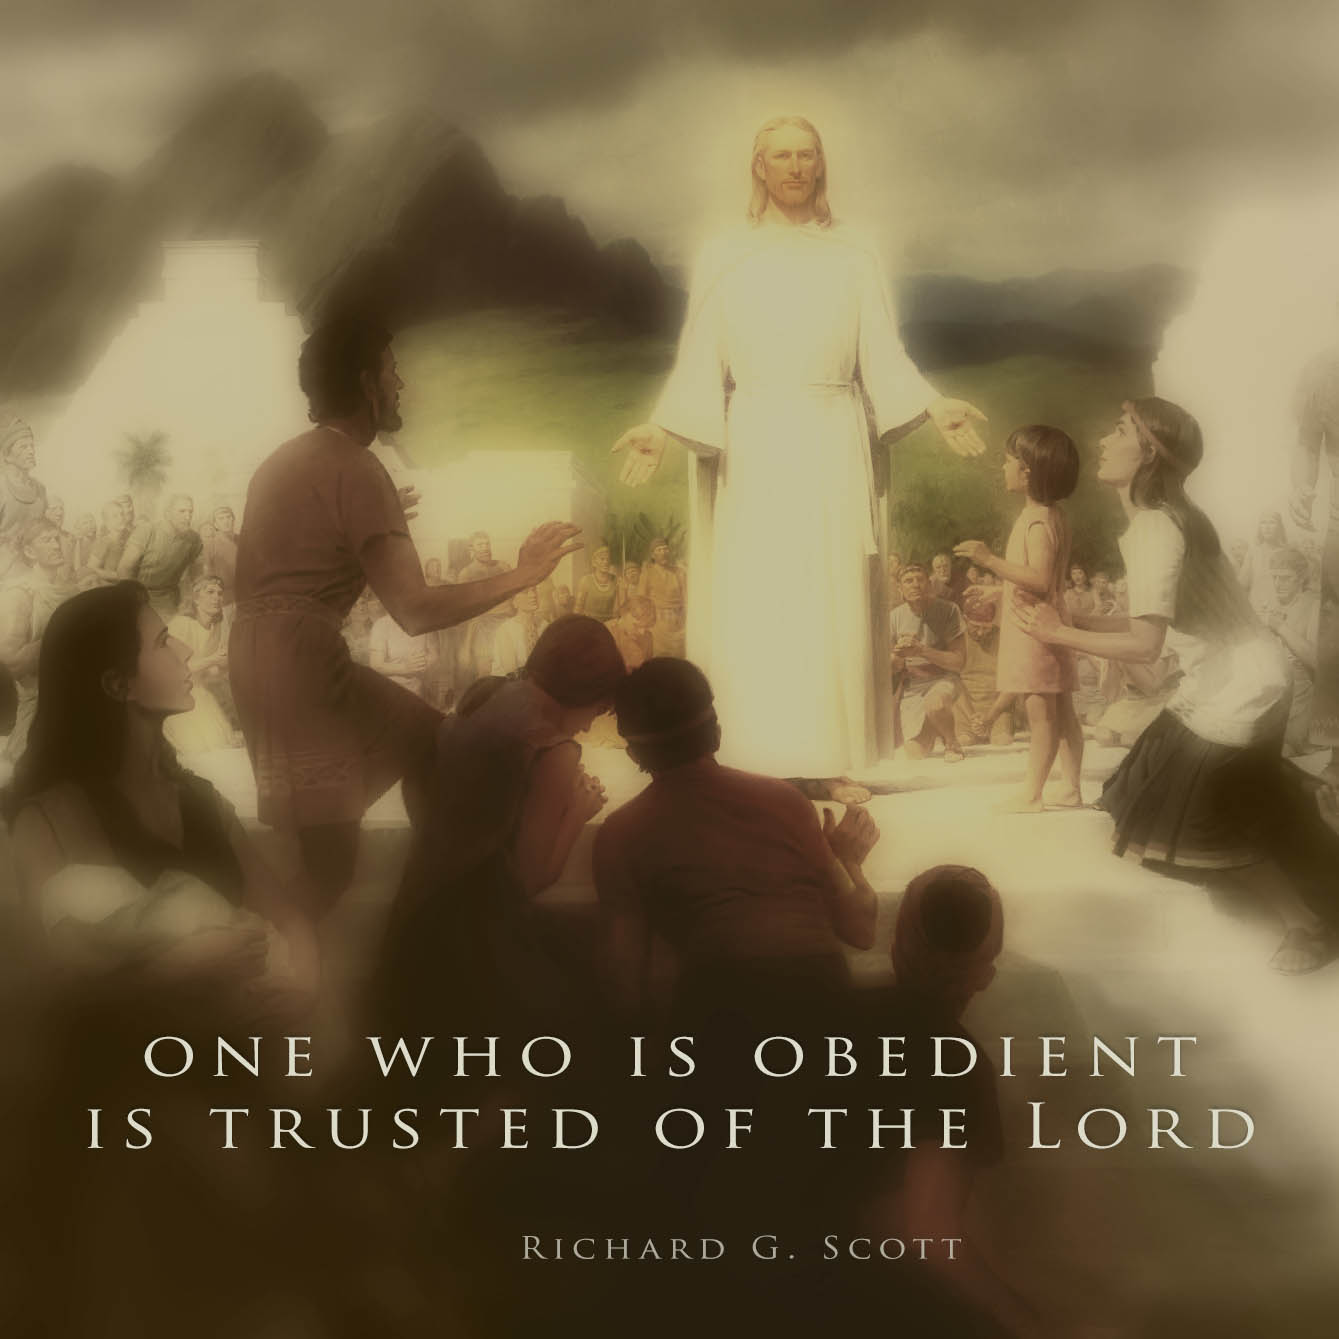 Who is obedient is trusted of the Lord by Richard G. Scott